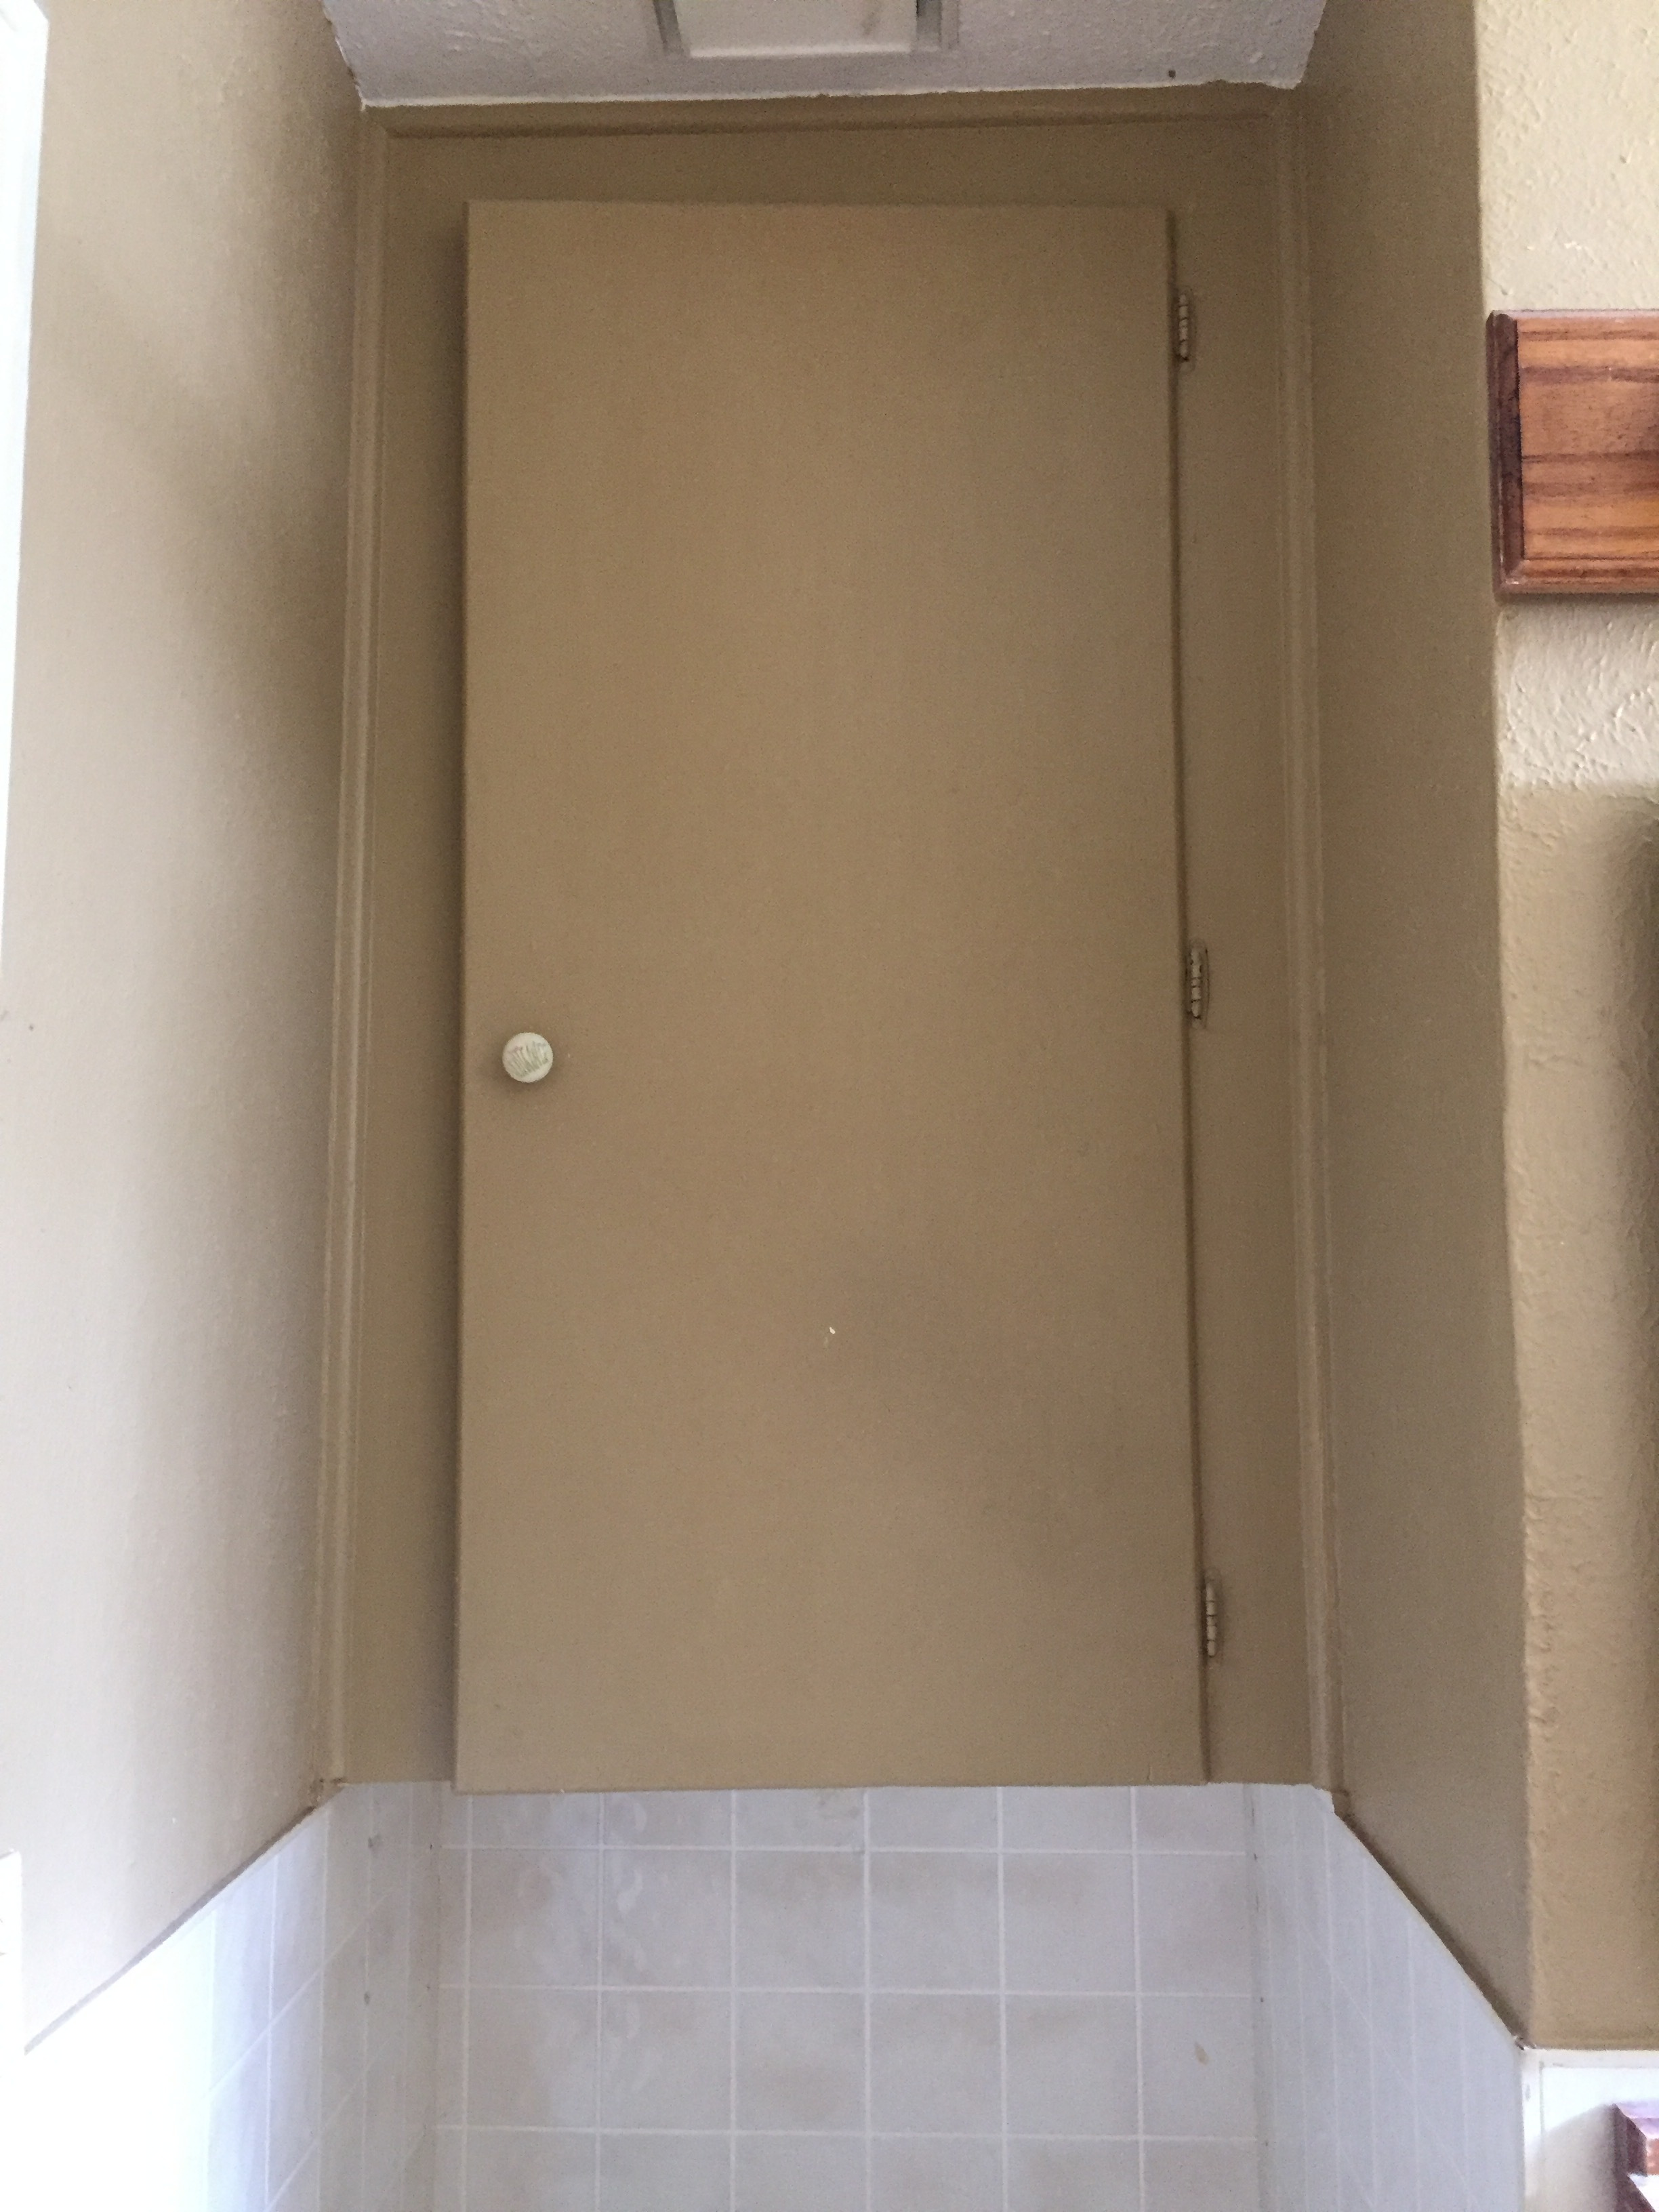 Cabinet that sat above the toilet. The entire house was oriented for a shorter resident, so we were hitting our head on this cabinet sitting down.